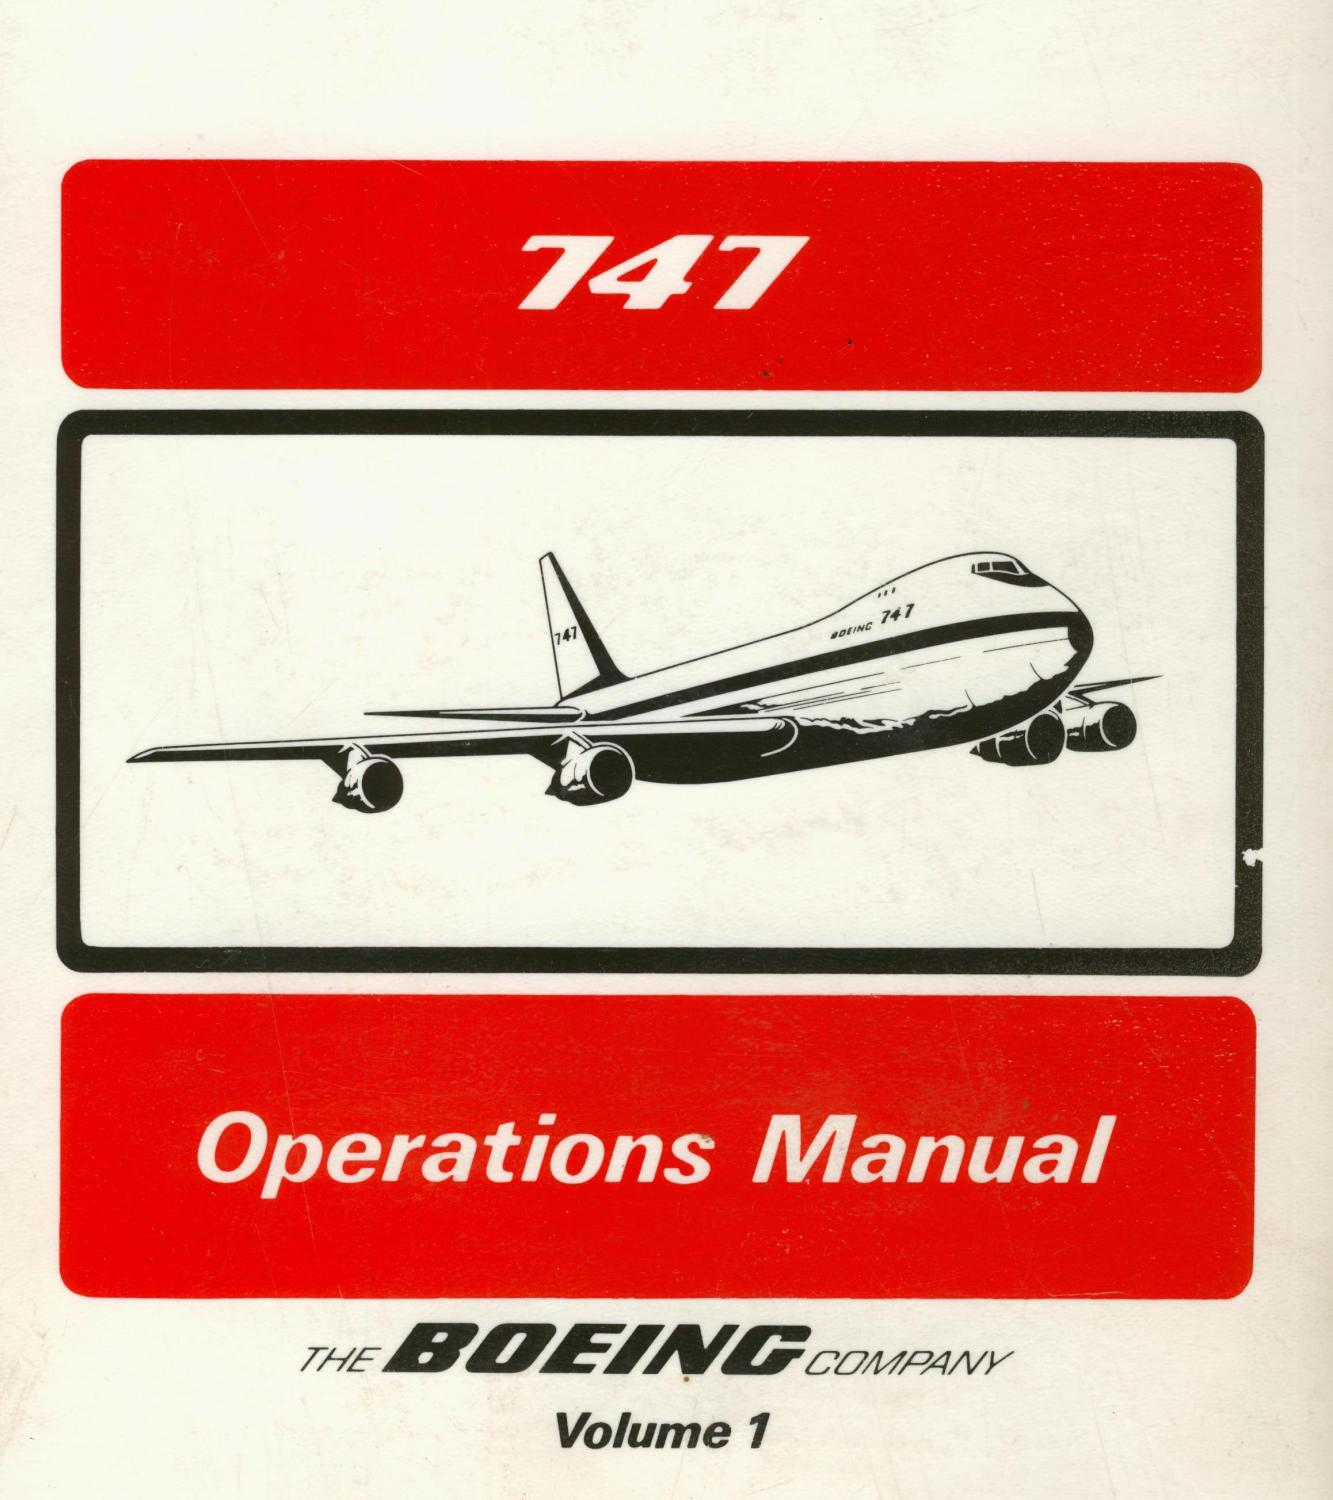 747 operations manual volume 1 by boeing aircraft company boeing rh abebooks co uk pmdg 747 operations manual boeing 747 operating manual